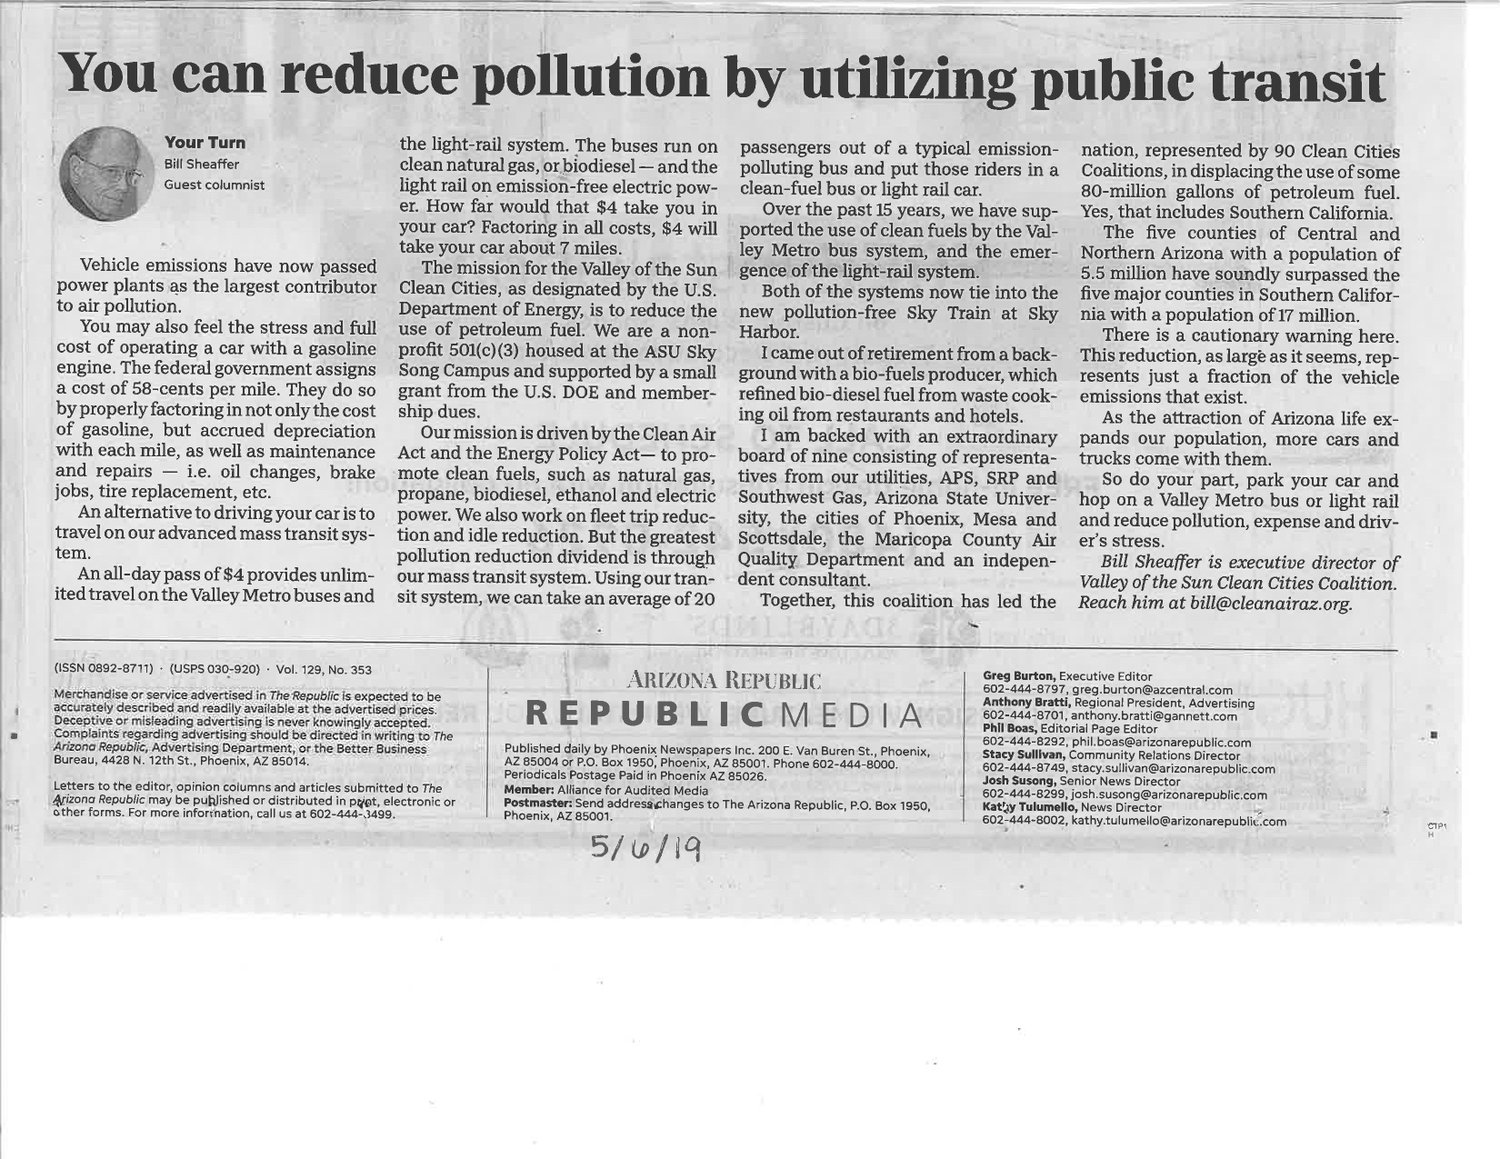 Arizona Republic Article 5/6/19 — Valley of the Sun Clean Cities